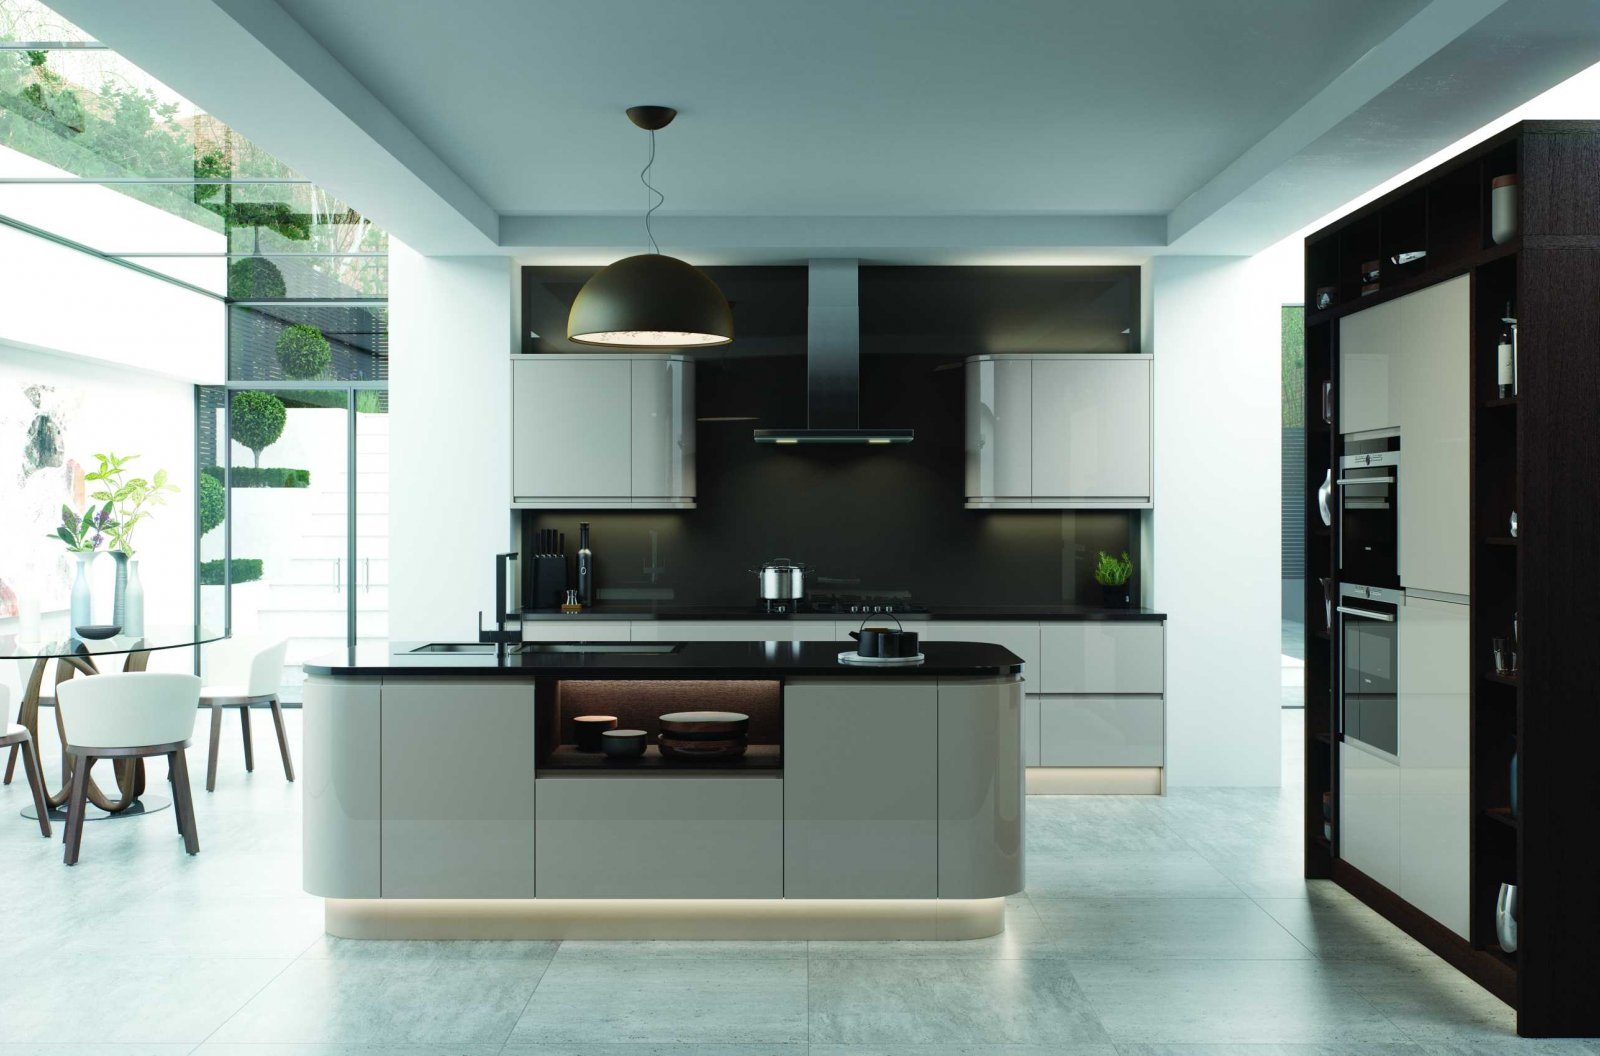 gloss cashmere j profile handleless kitchen full view